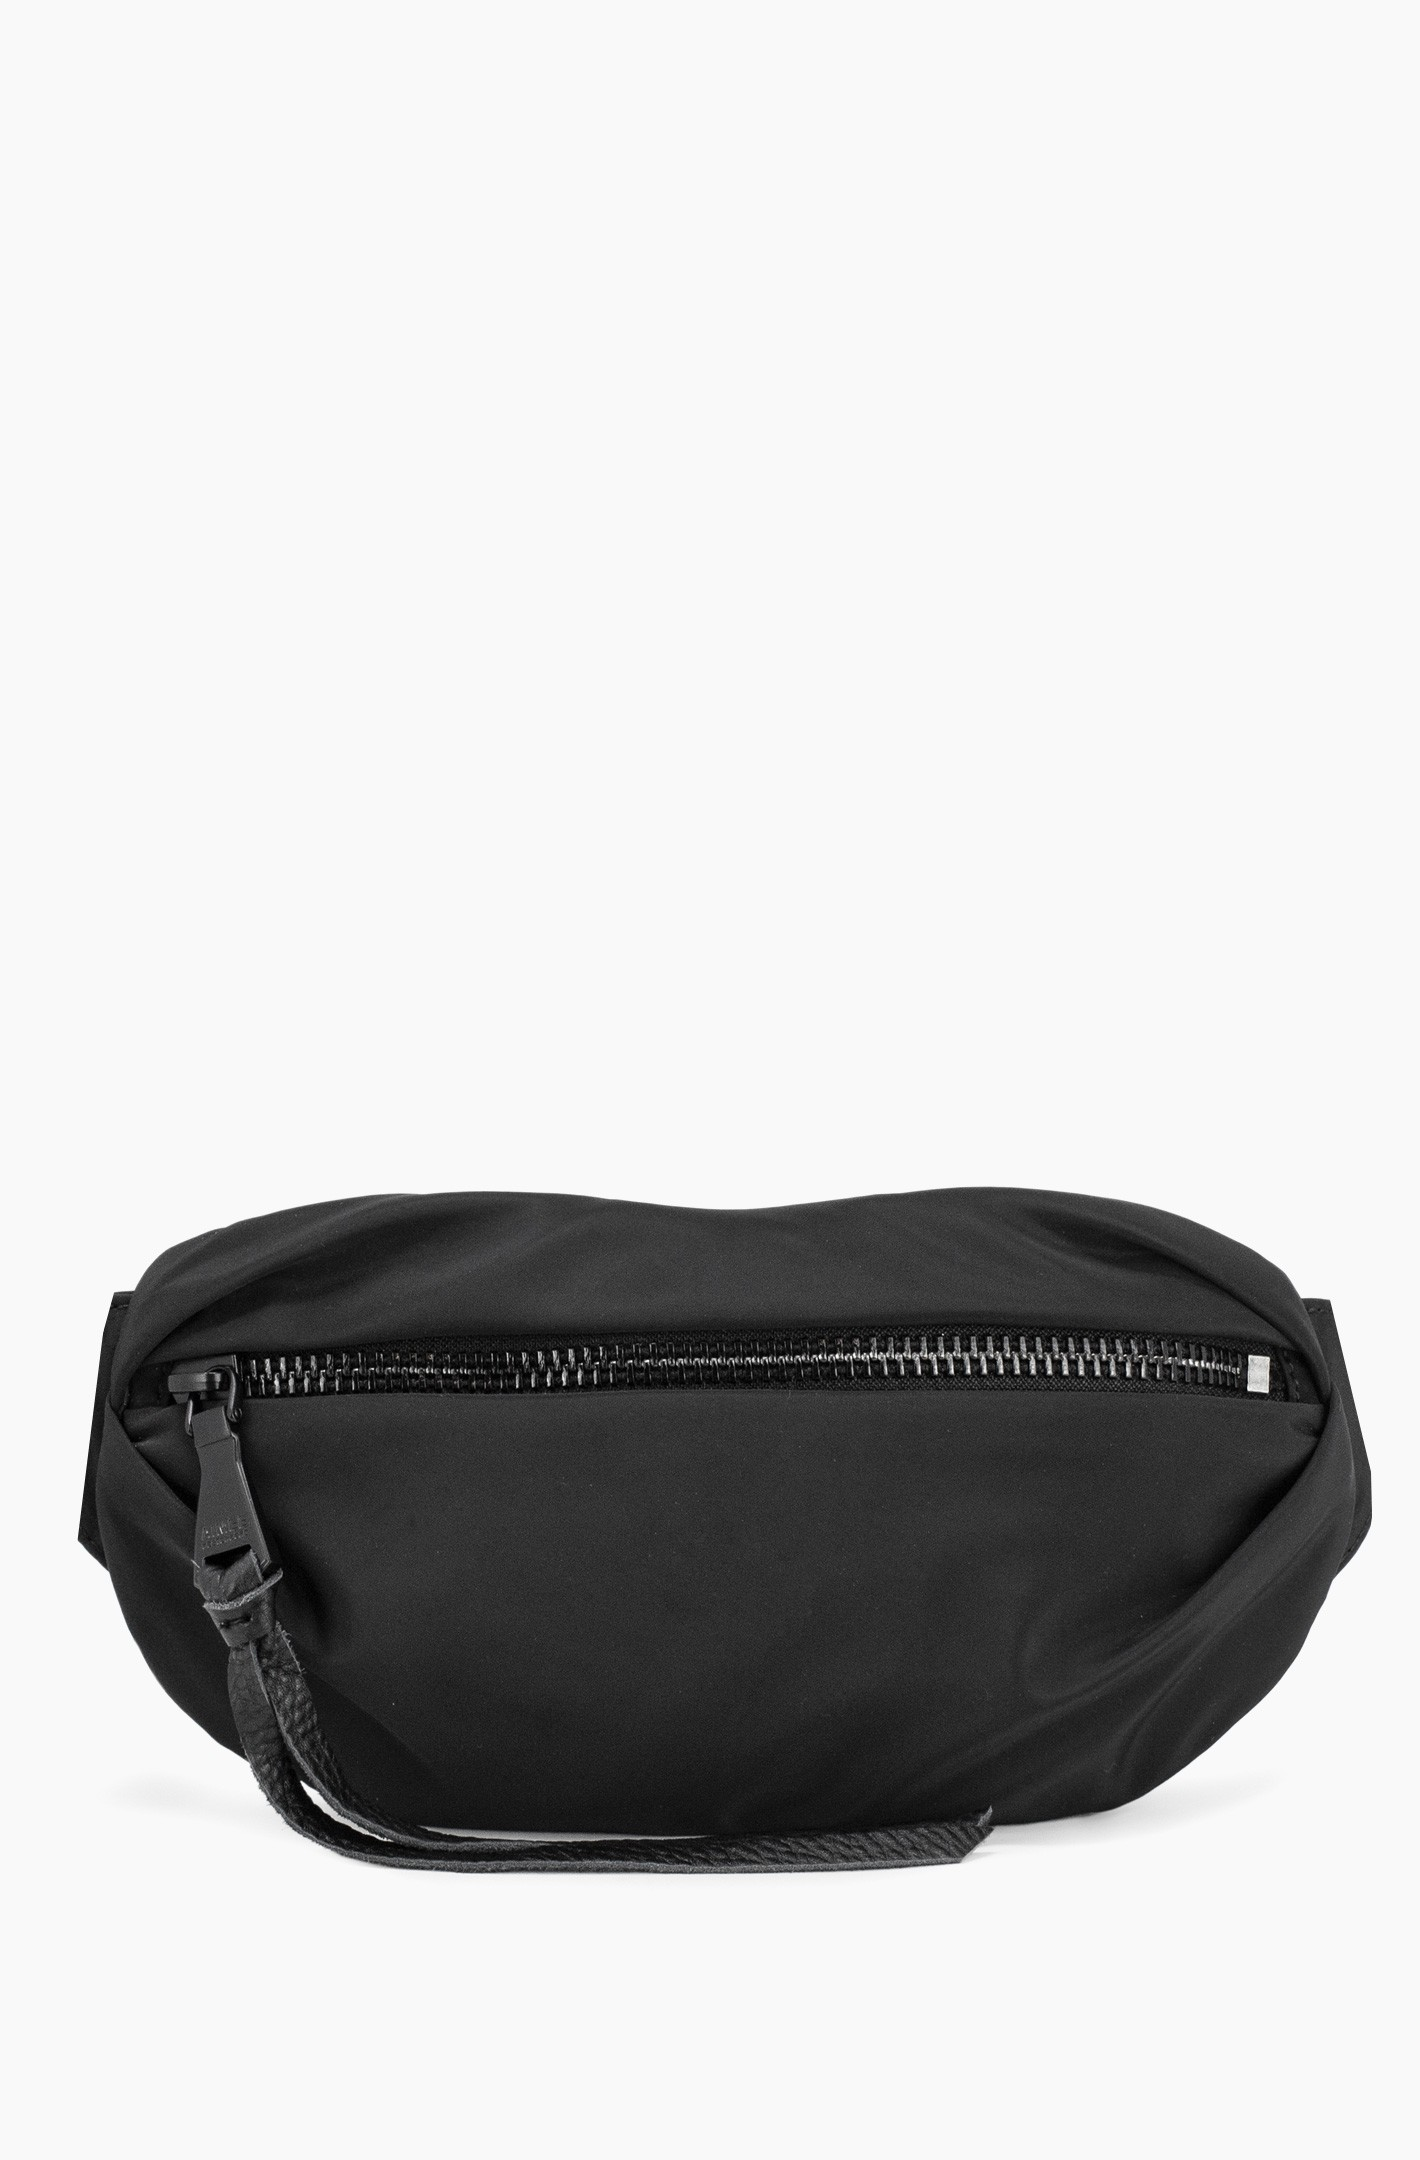 Nylon Milan Bum Bag